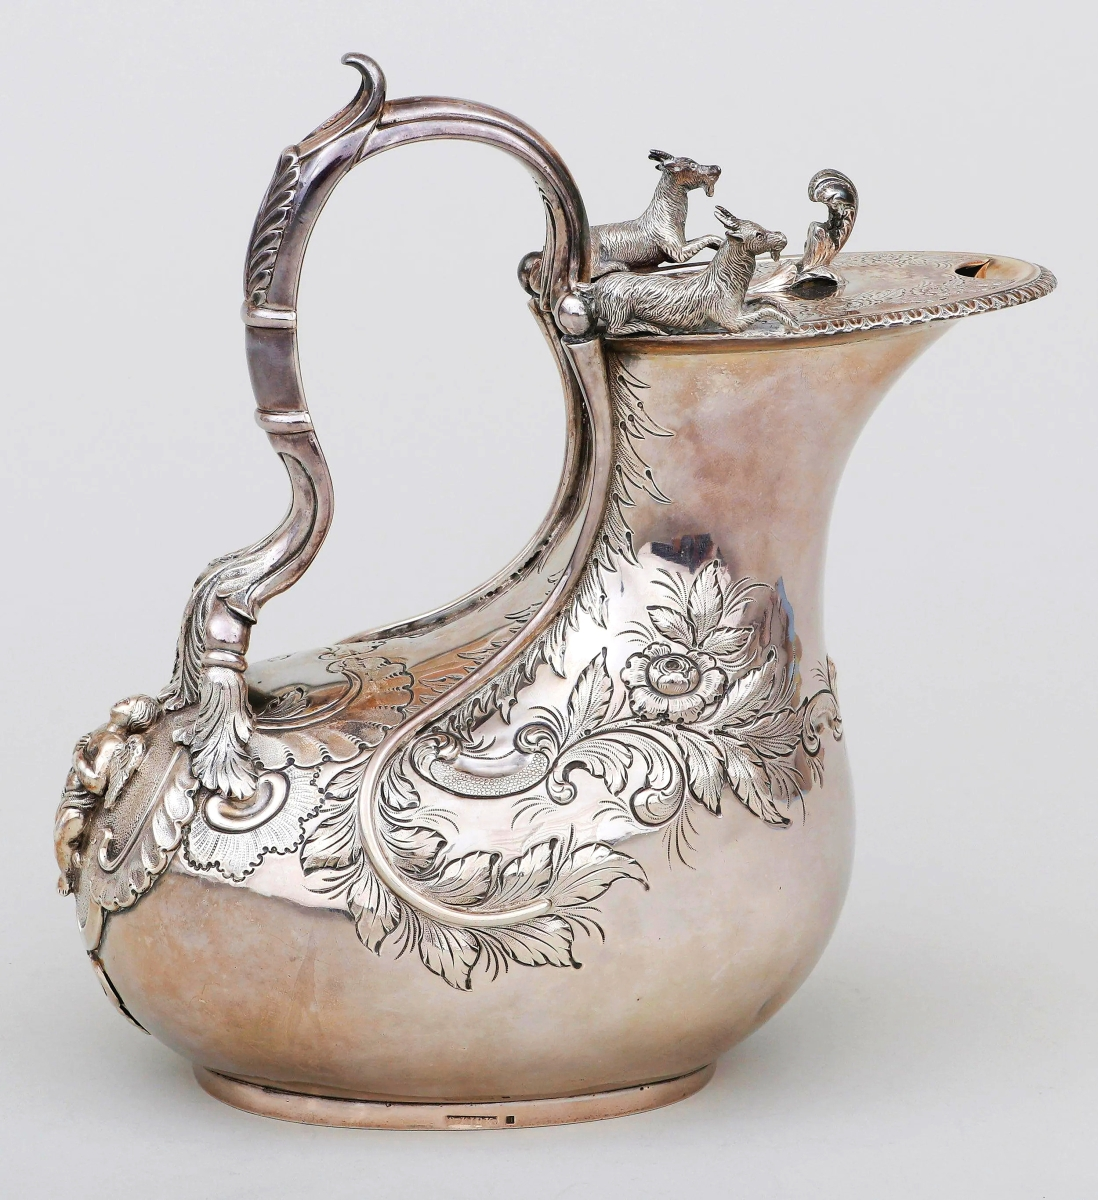 """Auctioneer Jean-Paul Napoli noted that Samuel Kirk's askos-form ewer received the most chatter in the presale run up. In a large size, at 10 inches high, the work sold as the second highest lot in the sale, earning $34,800. The goats atop reference the Greek askos form, wine jugs traditionally made from goatskin. This work was exhibited at the Baltimore Historical Society's 1993 show, """"Classical Maryland, 1815-1845: Fine and Decorative Arts from the Golden Age."""" The firm wrote, """"This is one of finest classical creations to come from early Nineteenth Century Baltimore."""" They noted its """"elaborate chasing, floral repousse work and detailed cast elements on the body... [including] a high-relief winged angel standing on a stippled background at the handle terminal."""""""